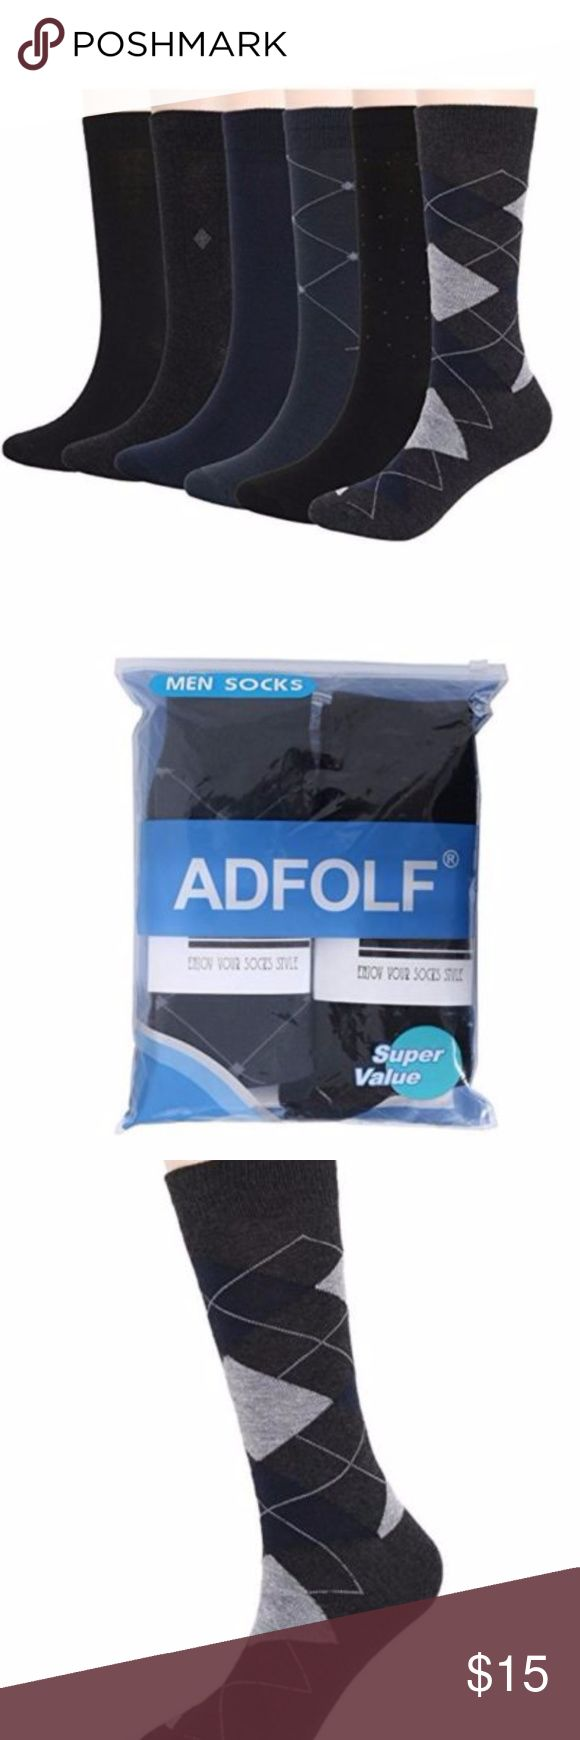 Argyle Patterned Long Crew Dress Socks Pack of 6 Onesize fits most. Men Casual Business Dress Socks 6 Pack- 70% Polyester, 15 % cotton, 5 % Spandex. Lightweight & Breathable.  SUPER COMFORT: Each of the men socks are made of high-quality fabric that will ensure lasting comfort.The super soft feature of this men dress socks give your foot a good comfort. And the patterned dress socks breathe well, wicking away sweat. The long dress socks slide right on and not too far up the calf and these…